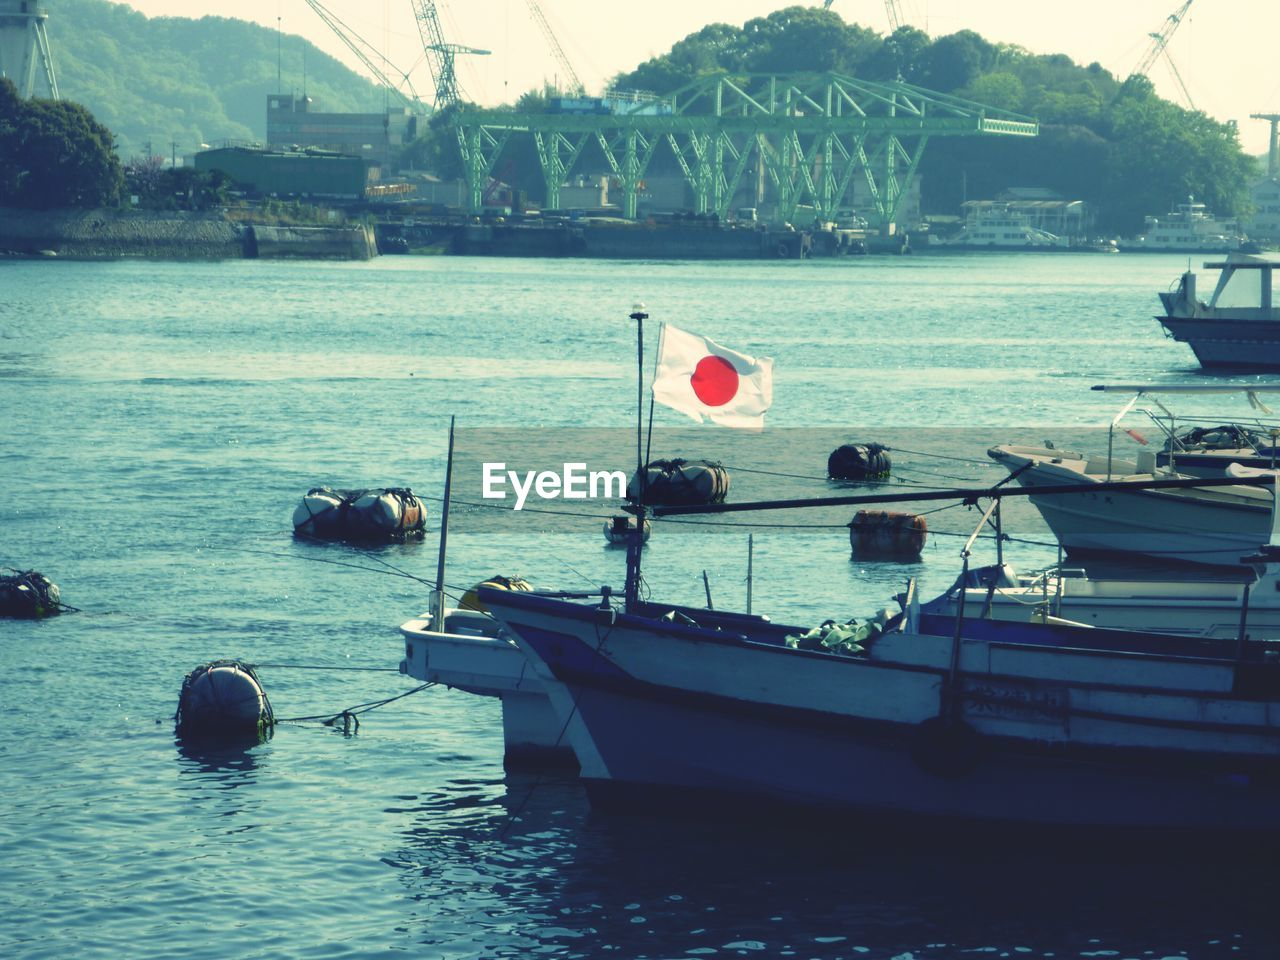 Boat With Japan Fag Moored In Sea Against Commercial Dock